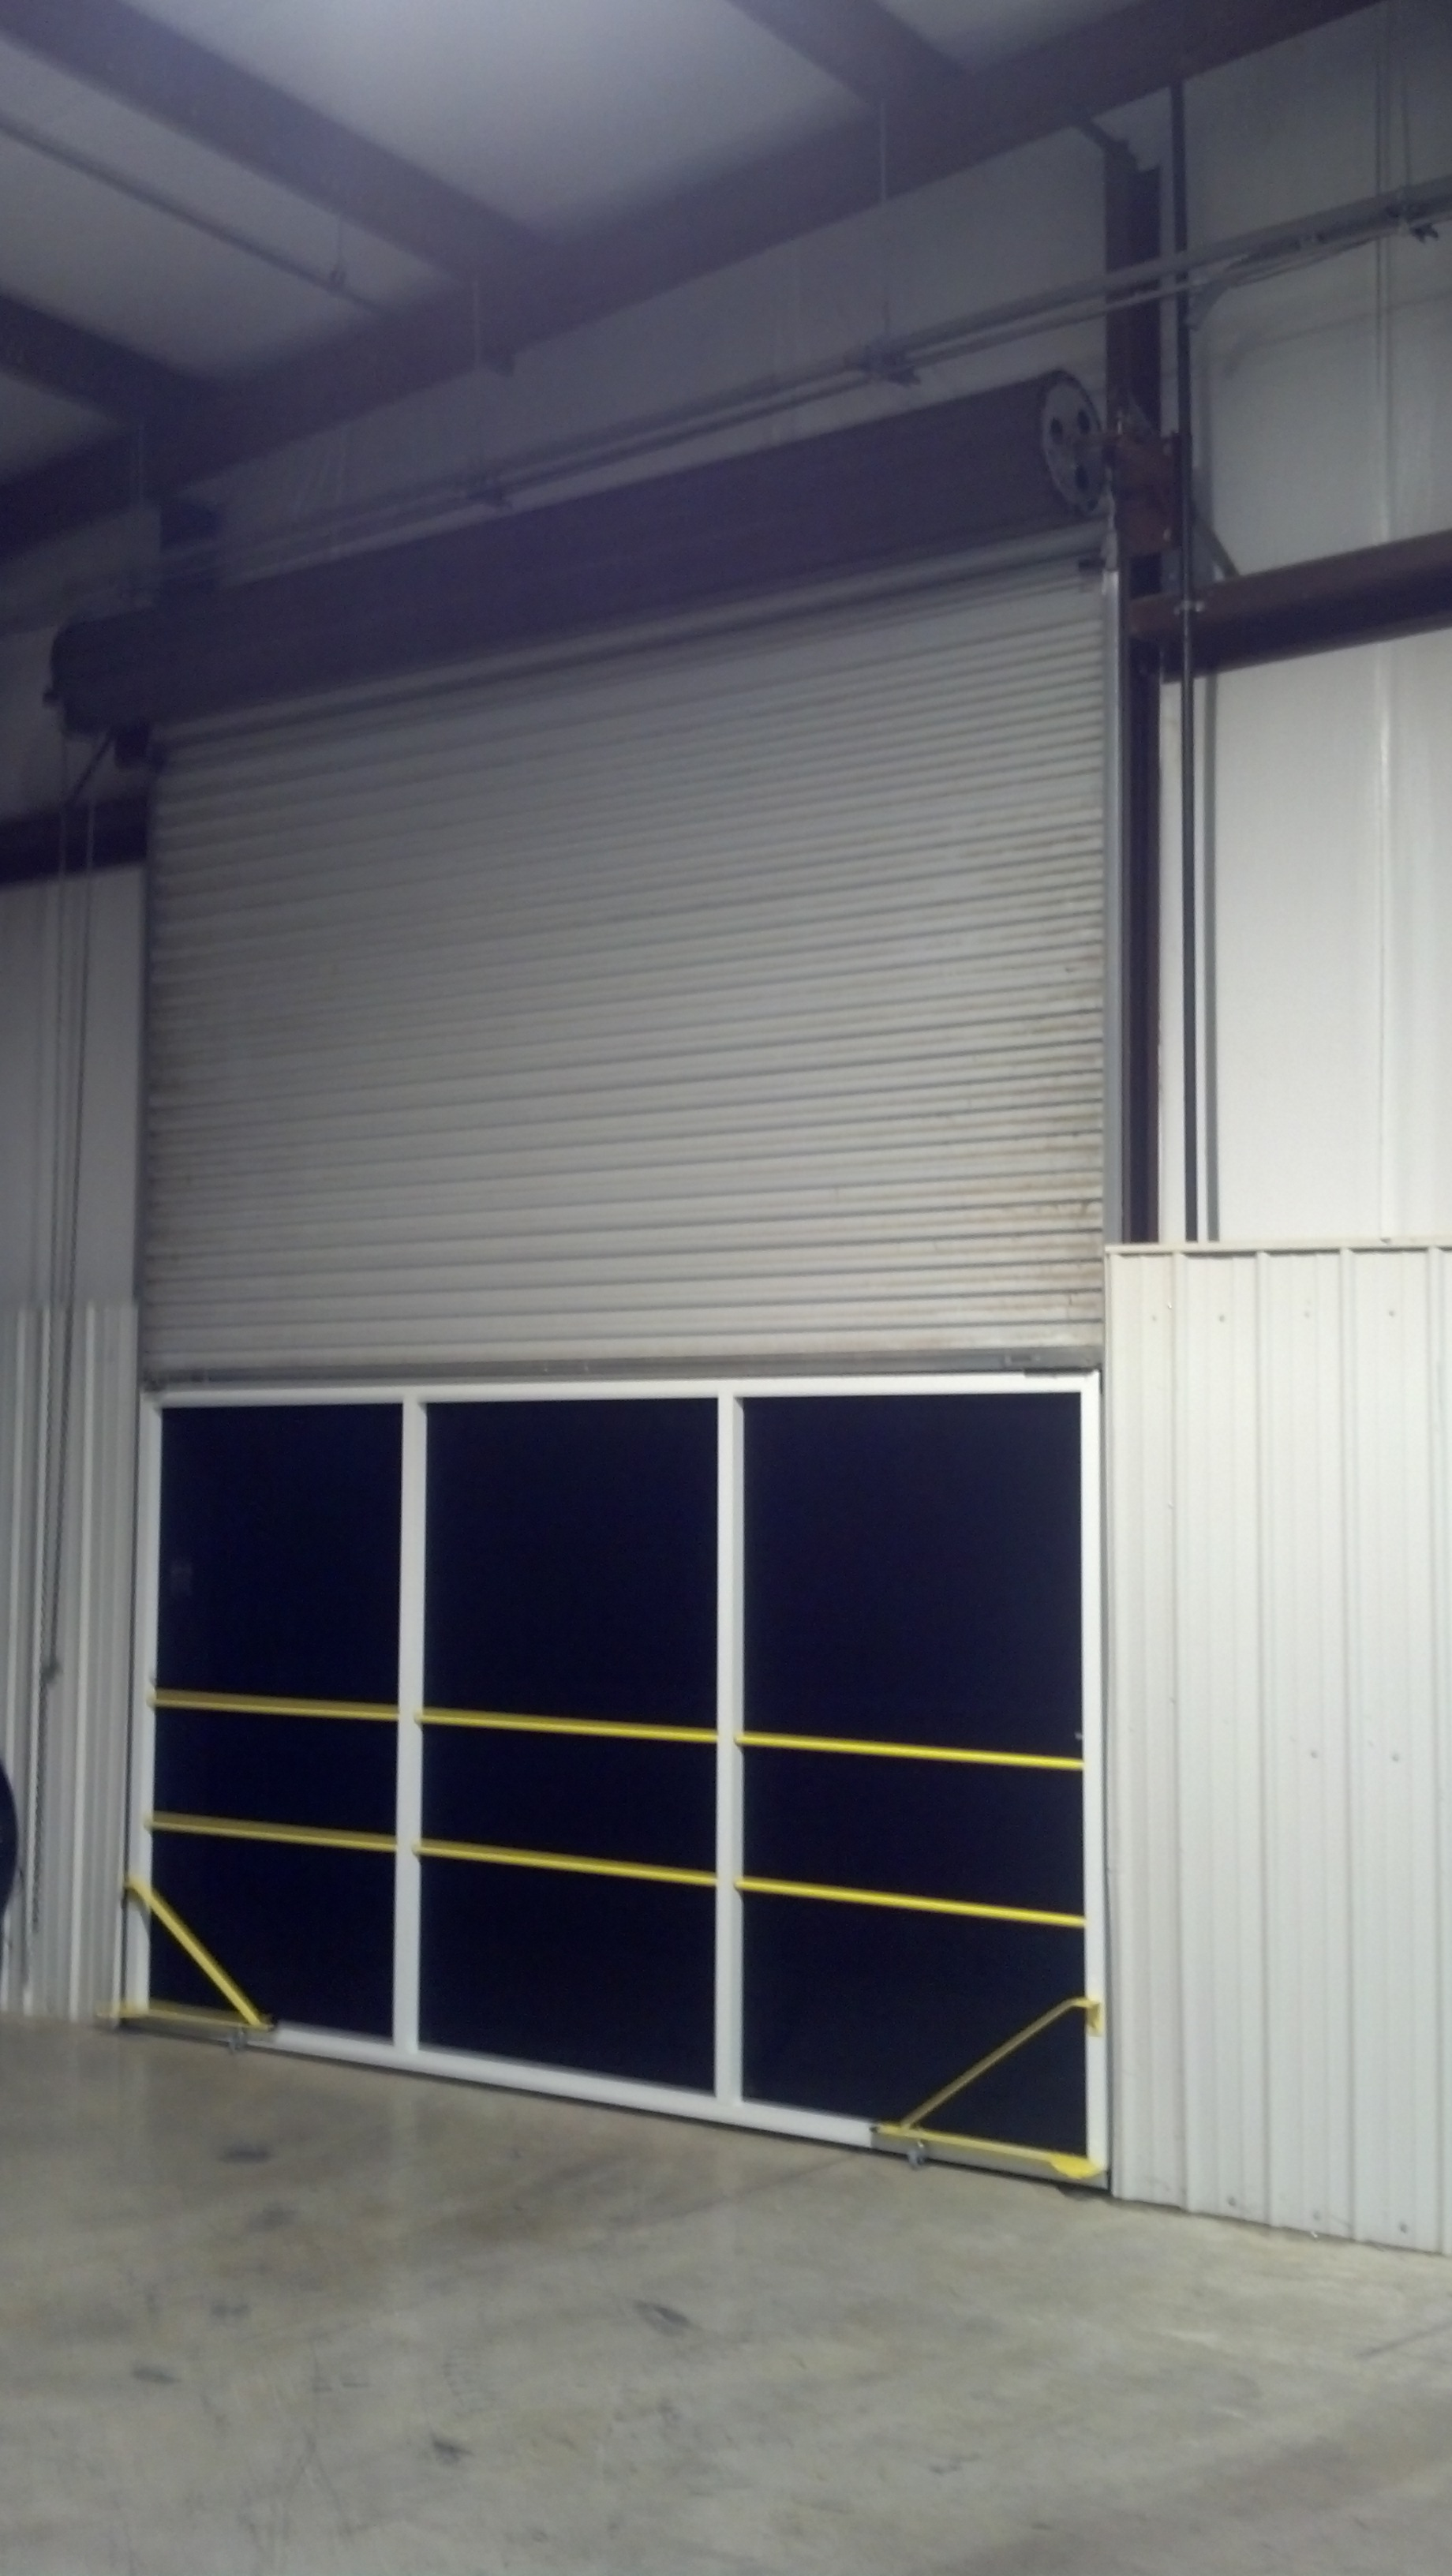 Garage Door Screen That Rolls Up Rollaround Screens For Rollup Warehouse Doors From Advanced